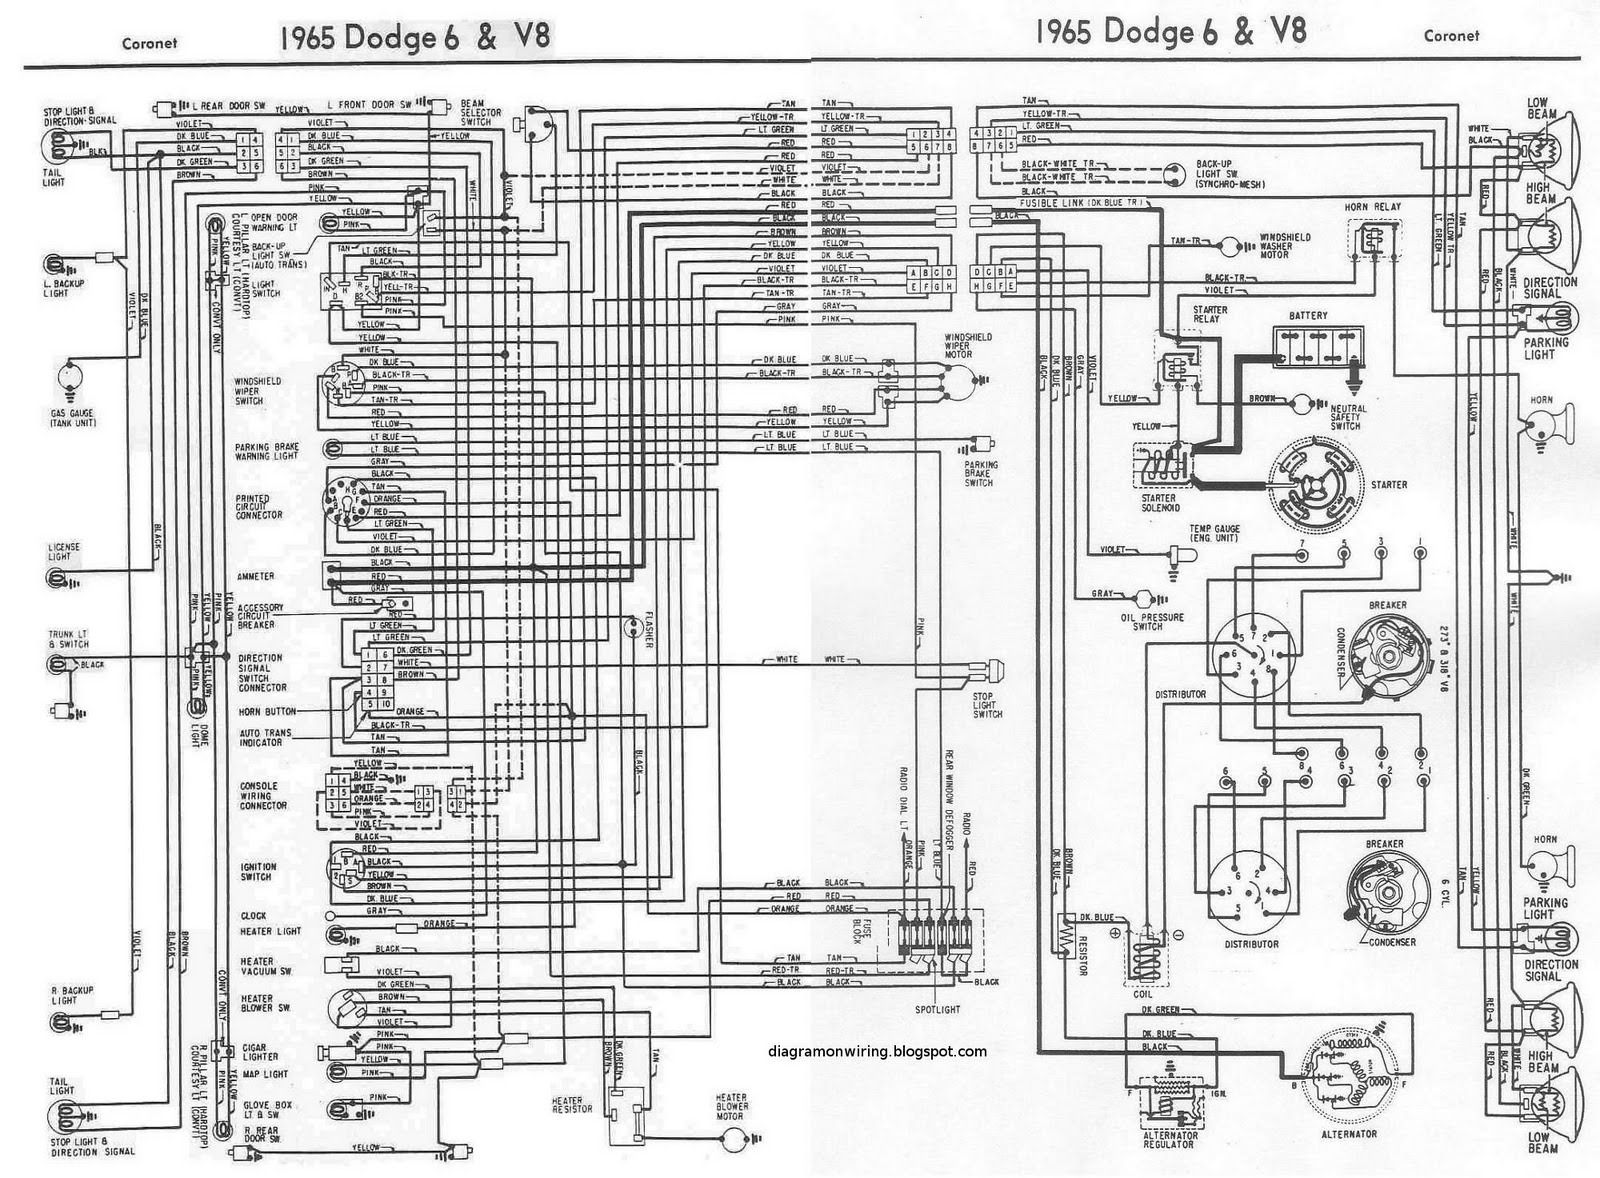 1966 Satellite Wiring Diagram Detailed Schematic Diagrams 1968 Ford F 250 Engine Plymouth Duster Likewise 66 Mustang